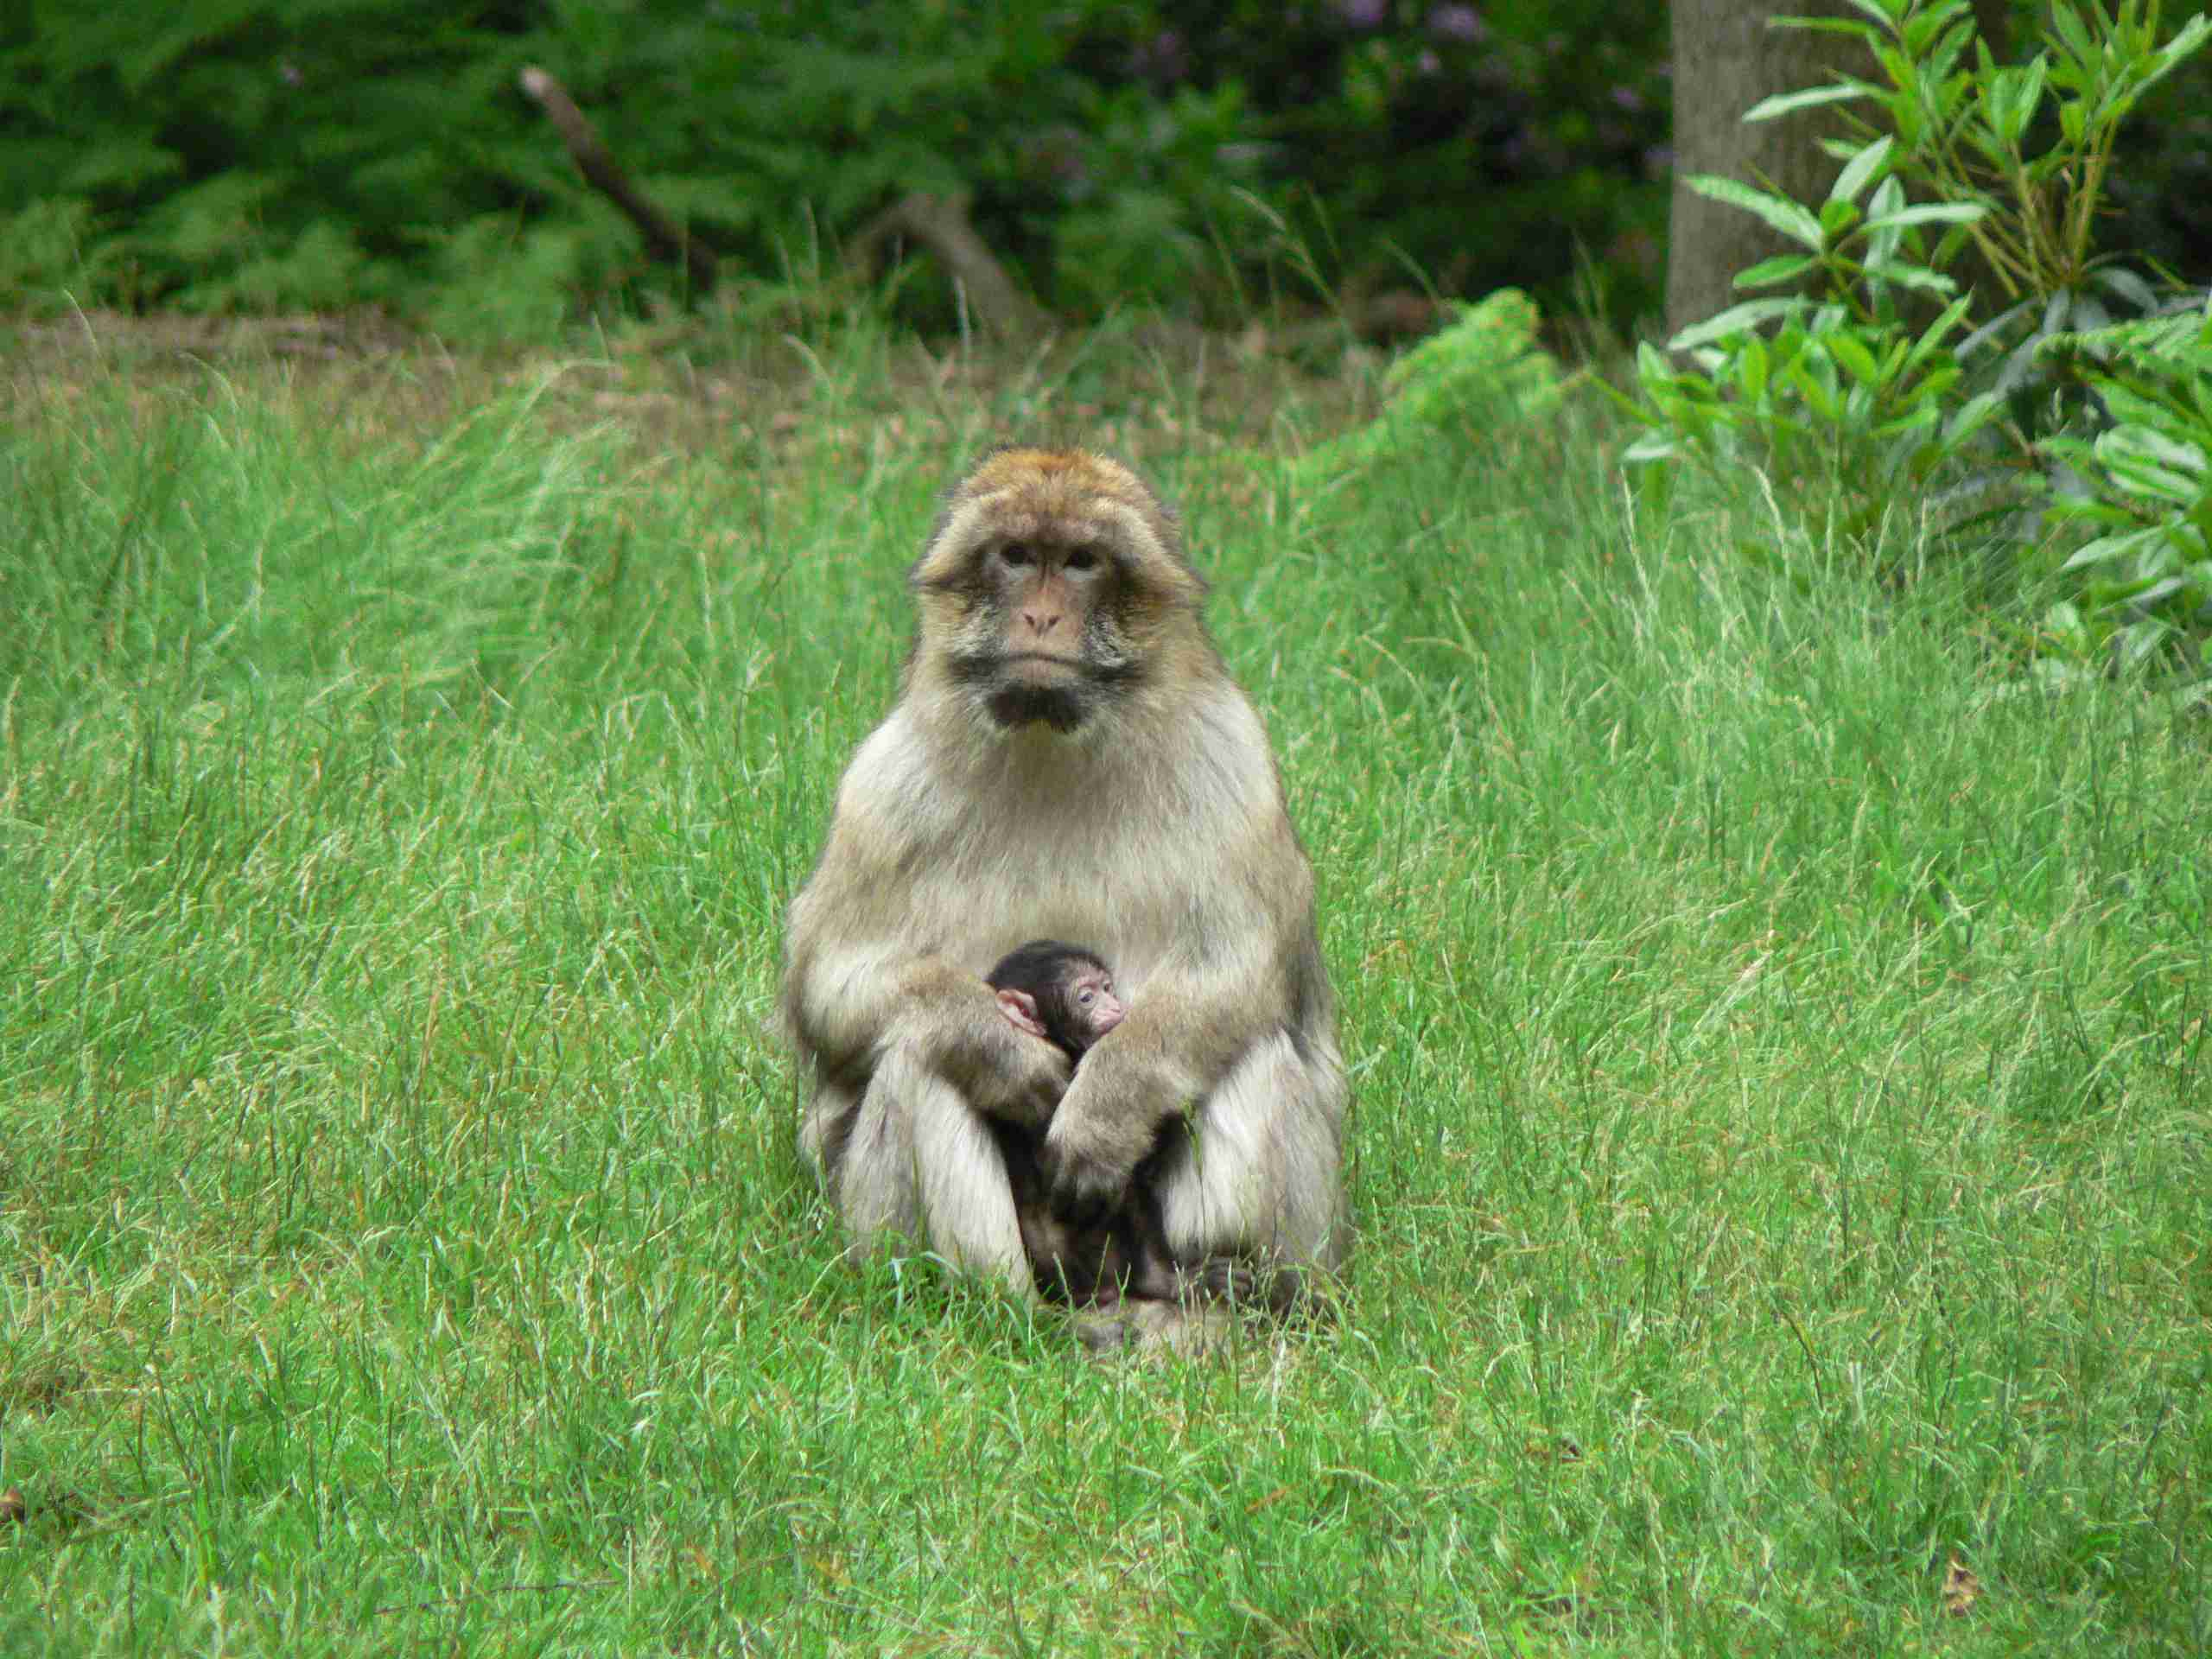 macaque monkey at the Monkey Forest in Staffordshire